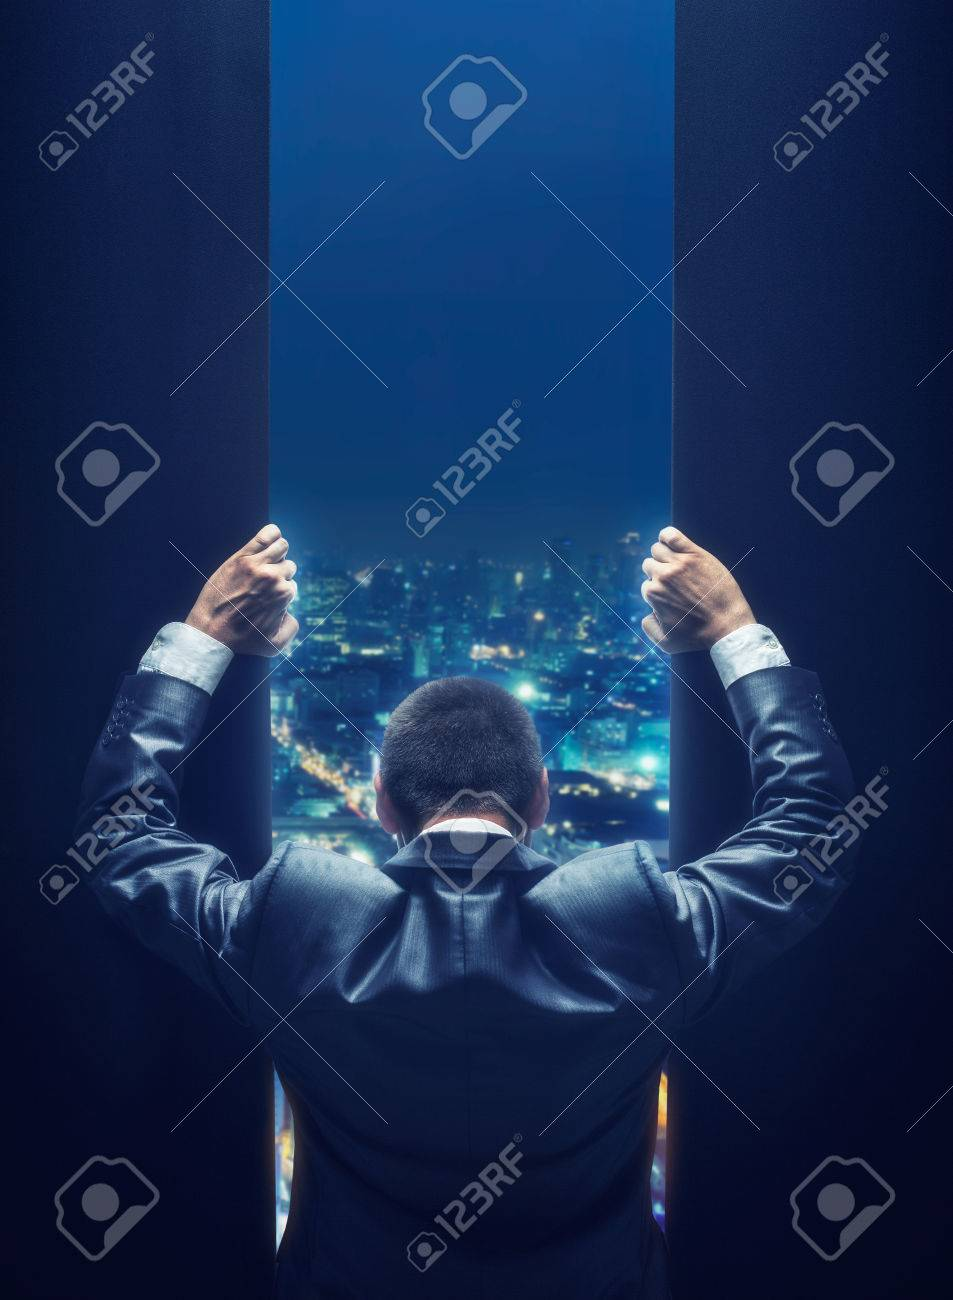 Businessman opening the gate to a night cityscape - 49820910